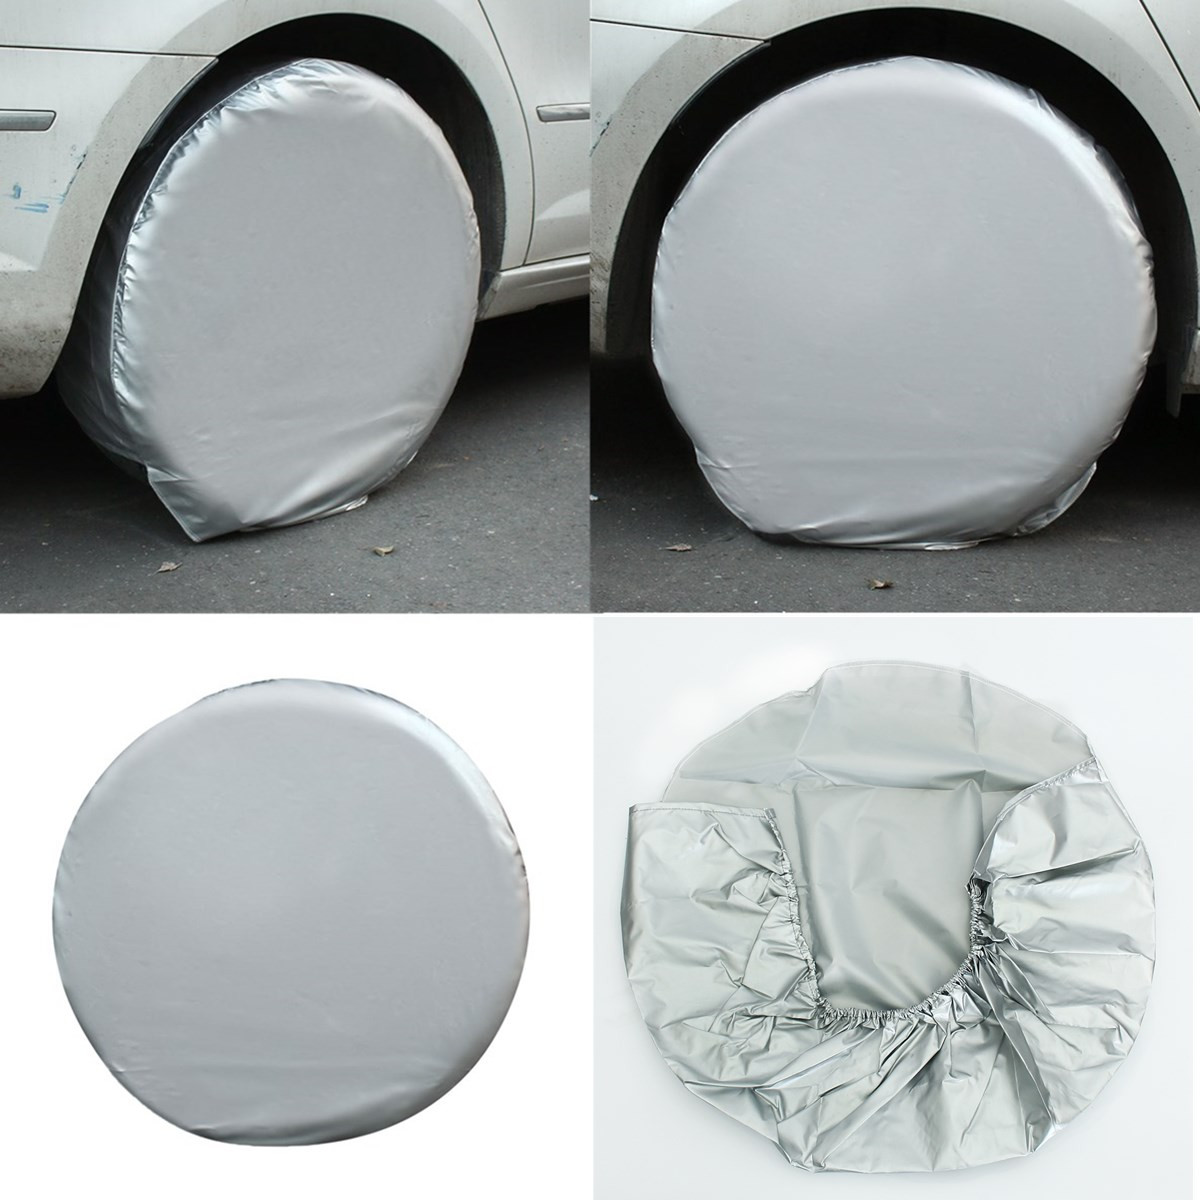 4PCs/Set 27-29 Car Auto Spare Wheels Tire Tyre Cover Heavy Duty Car Waterproof Tire Cover For RV Truck Trailer Motorhome